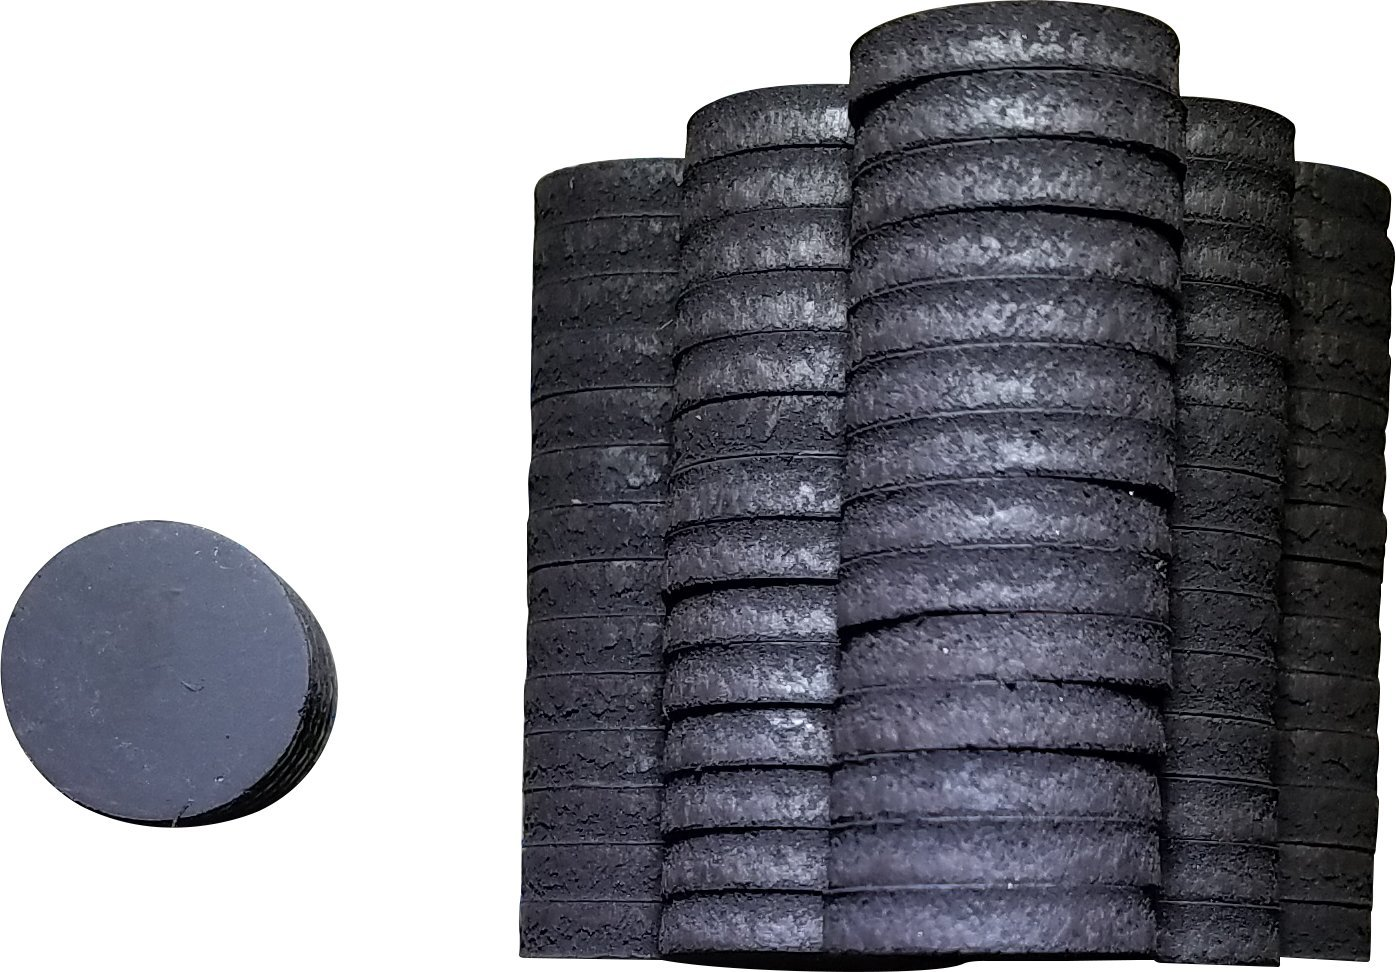 Ceramic Industrial Magnets - Round Disc - Ferrite Magnets, Science Project, Crafts, 0.75'' Round, 100 Pcs.